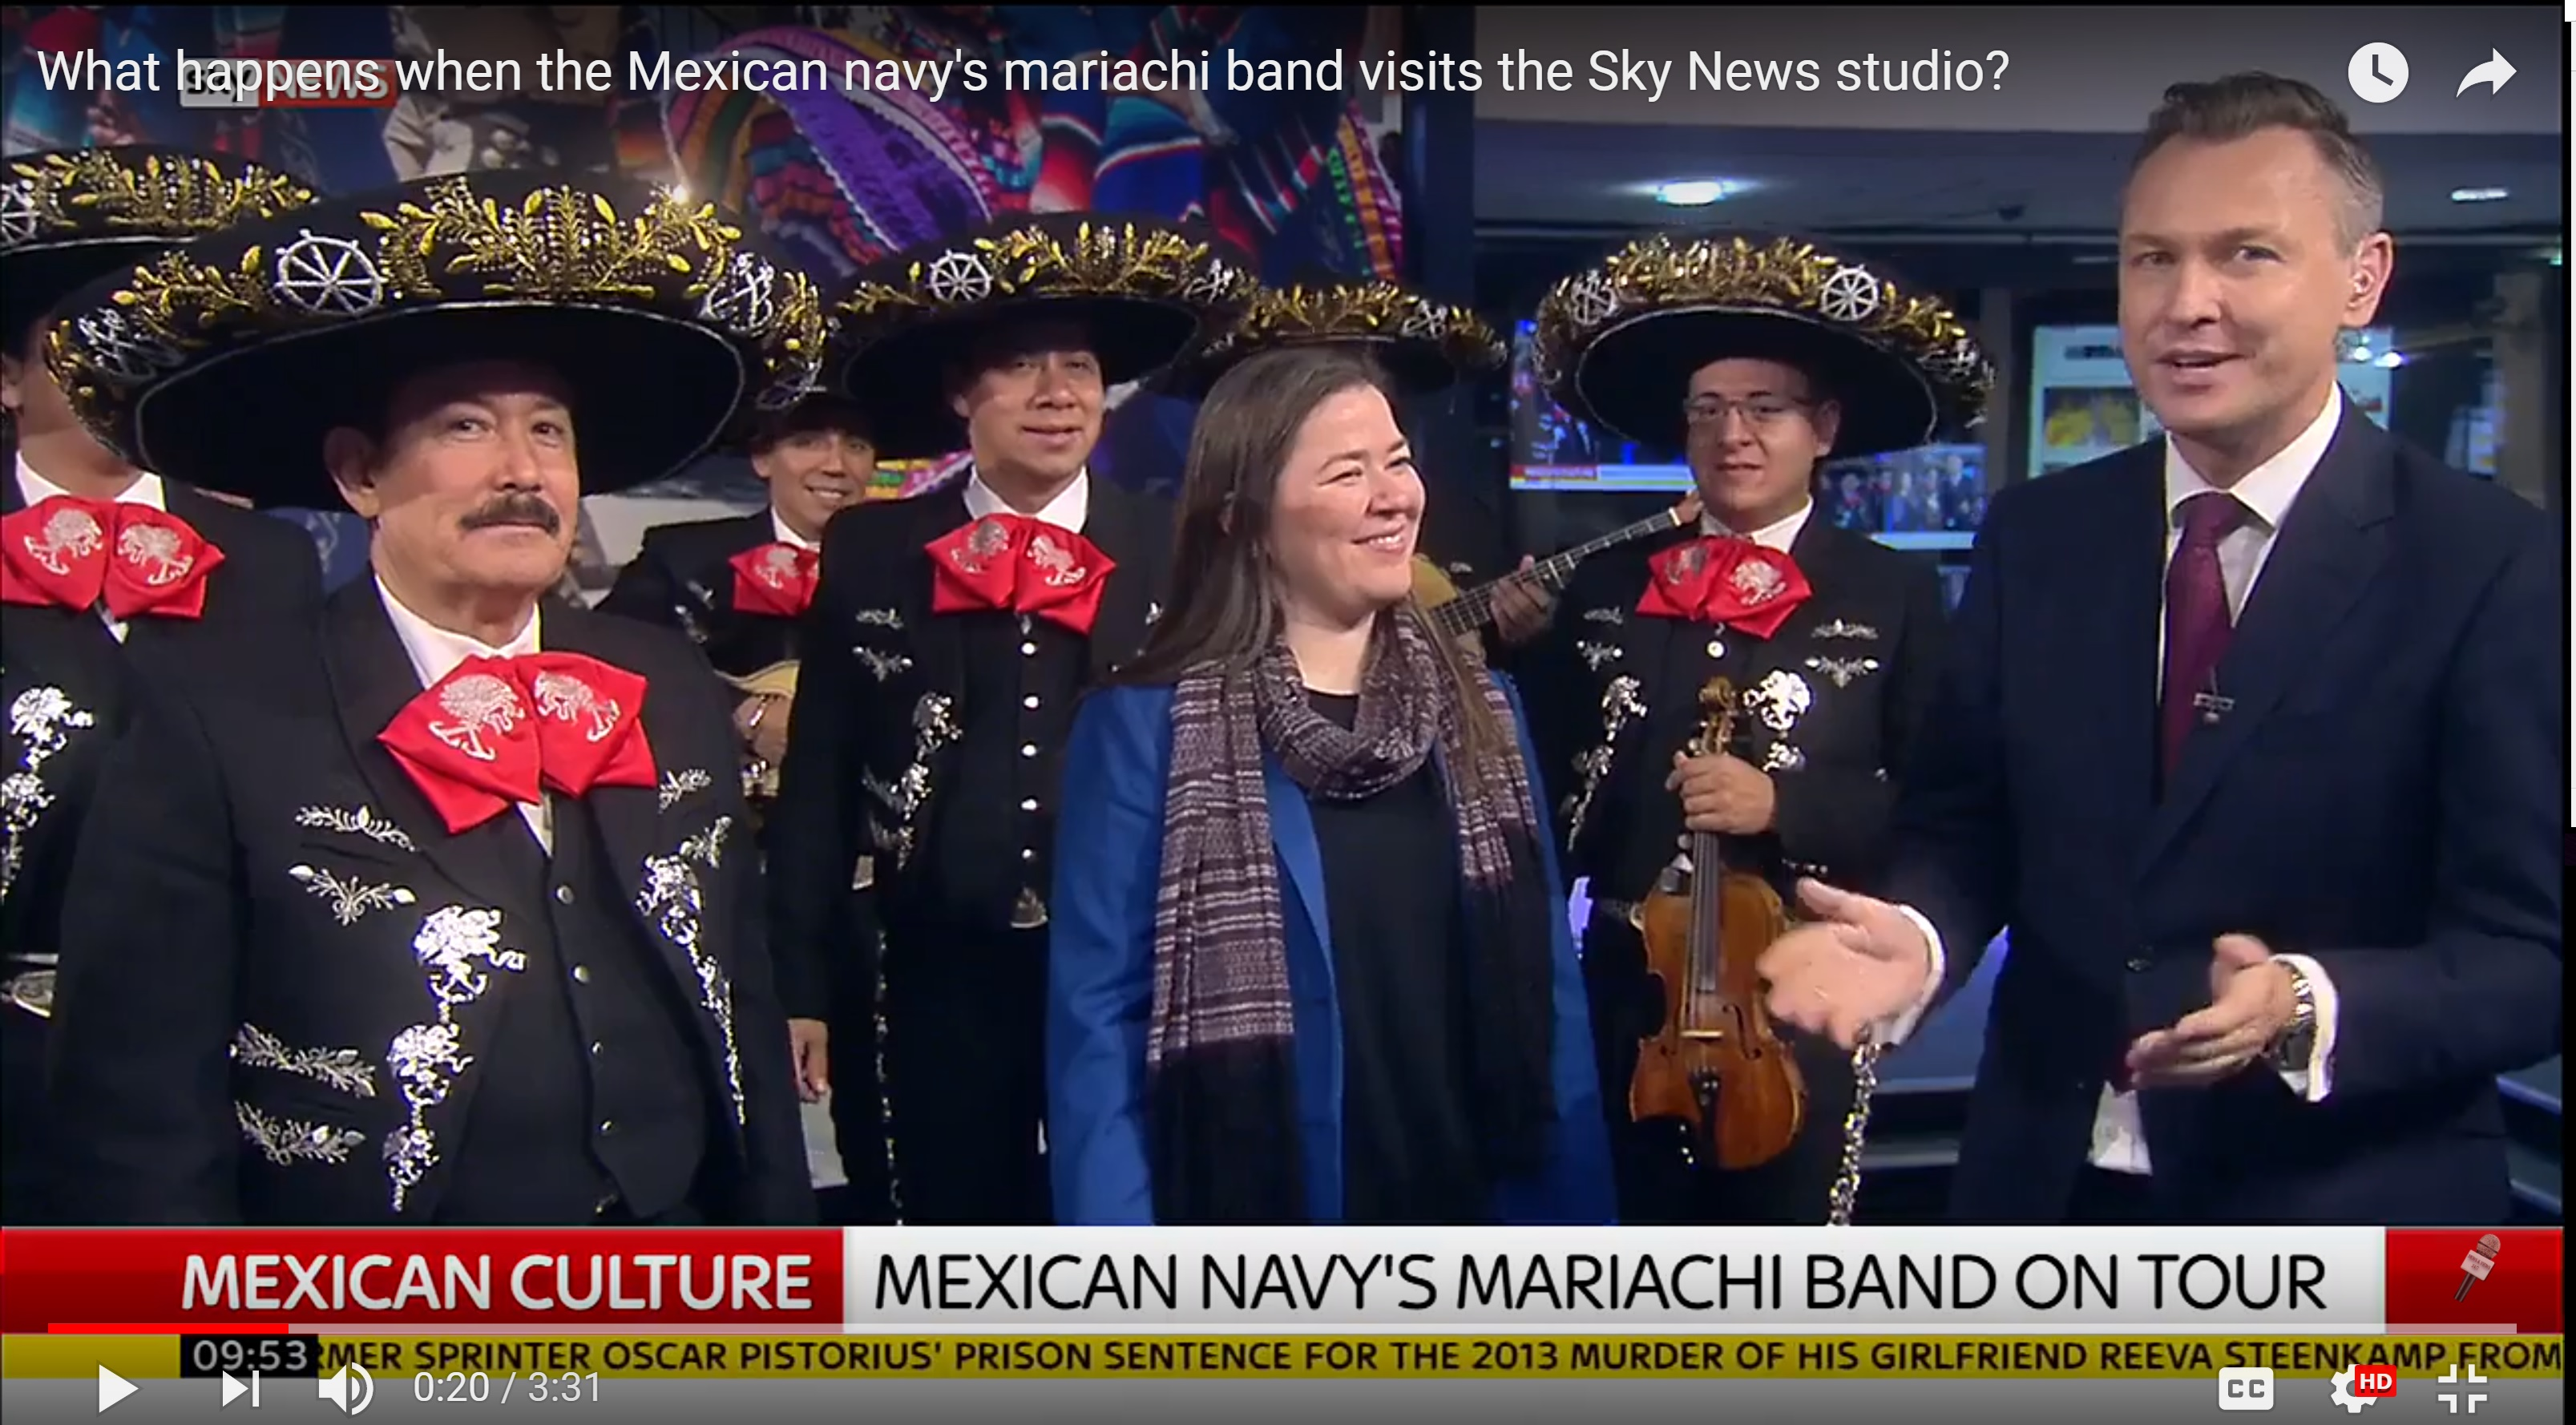 What Happens When The Mexican Navys Mariachi Band Visits Sky News